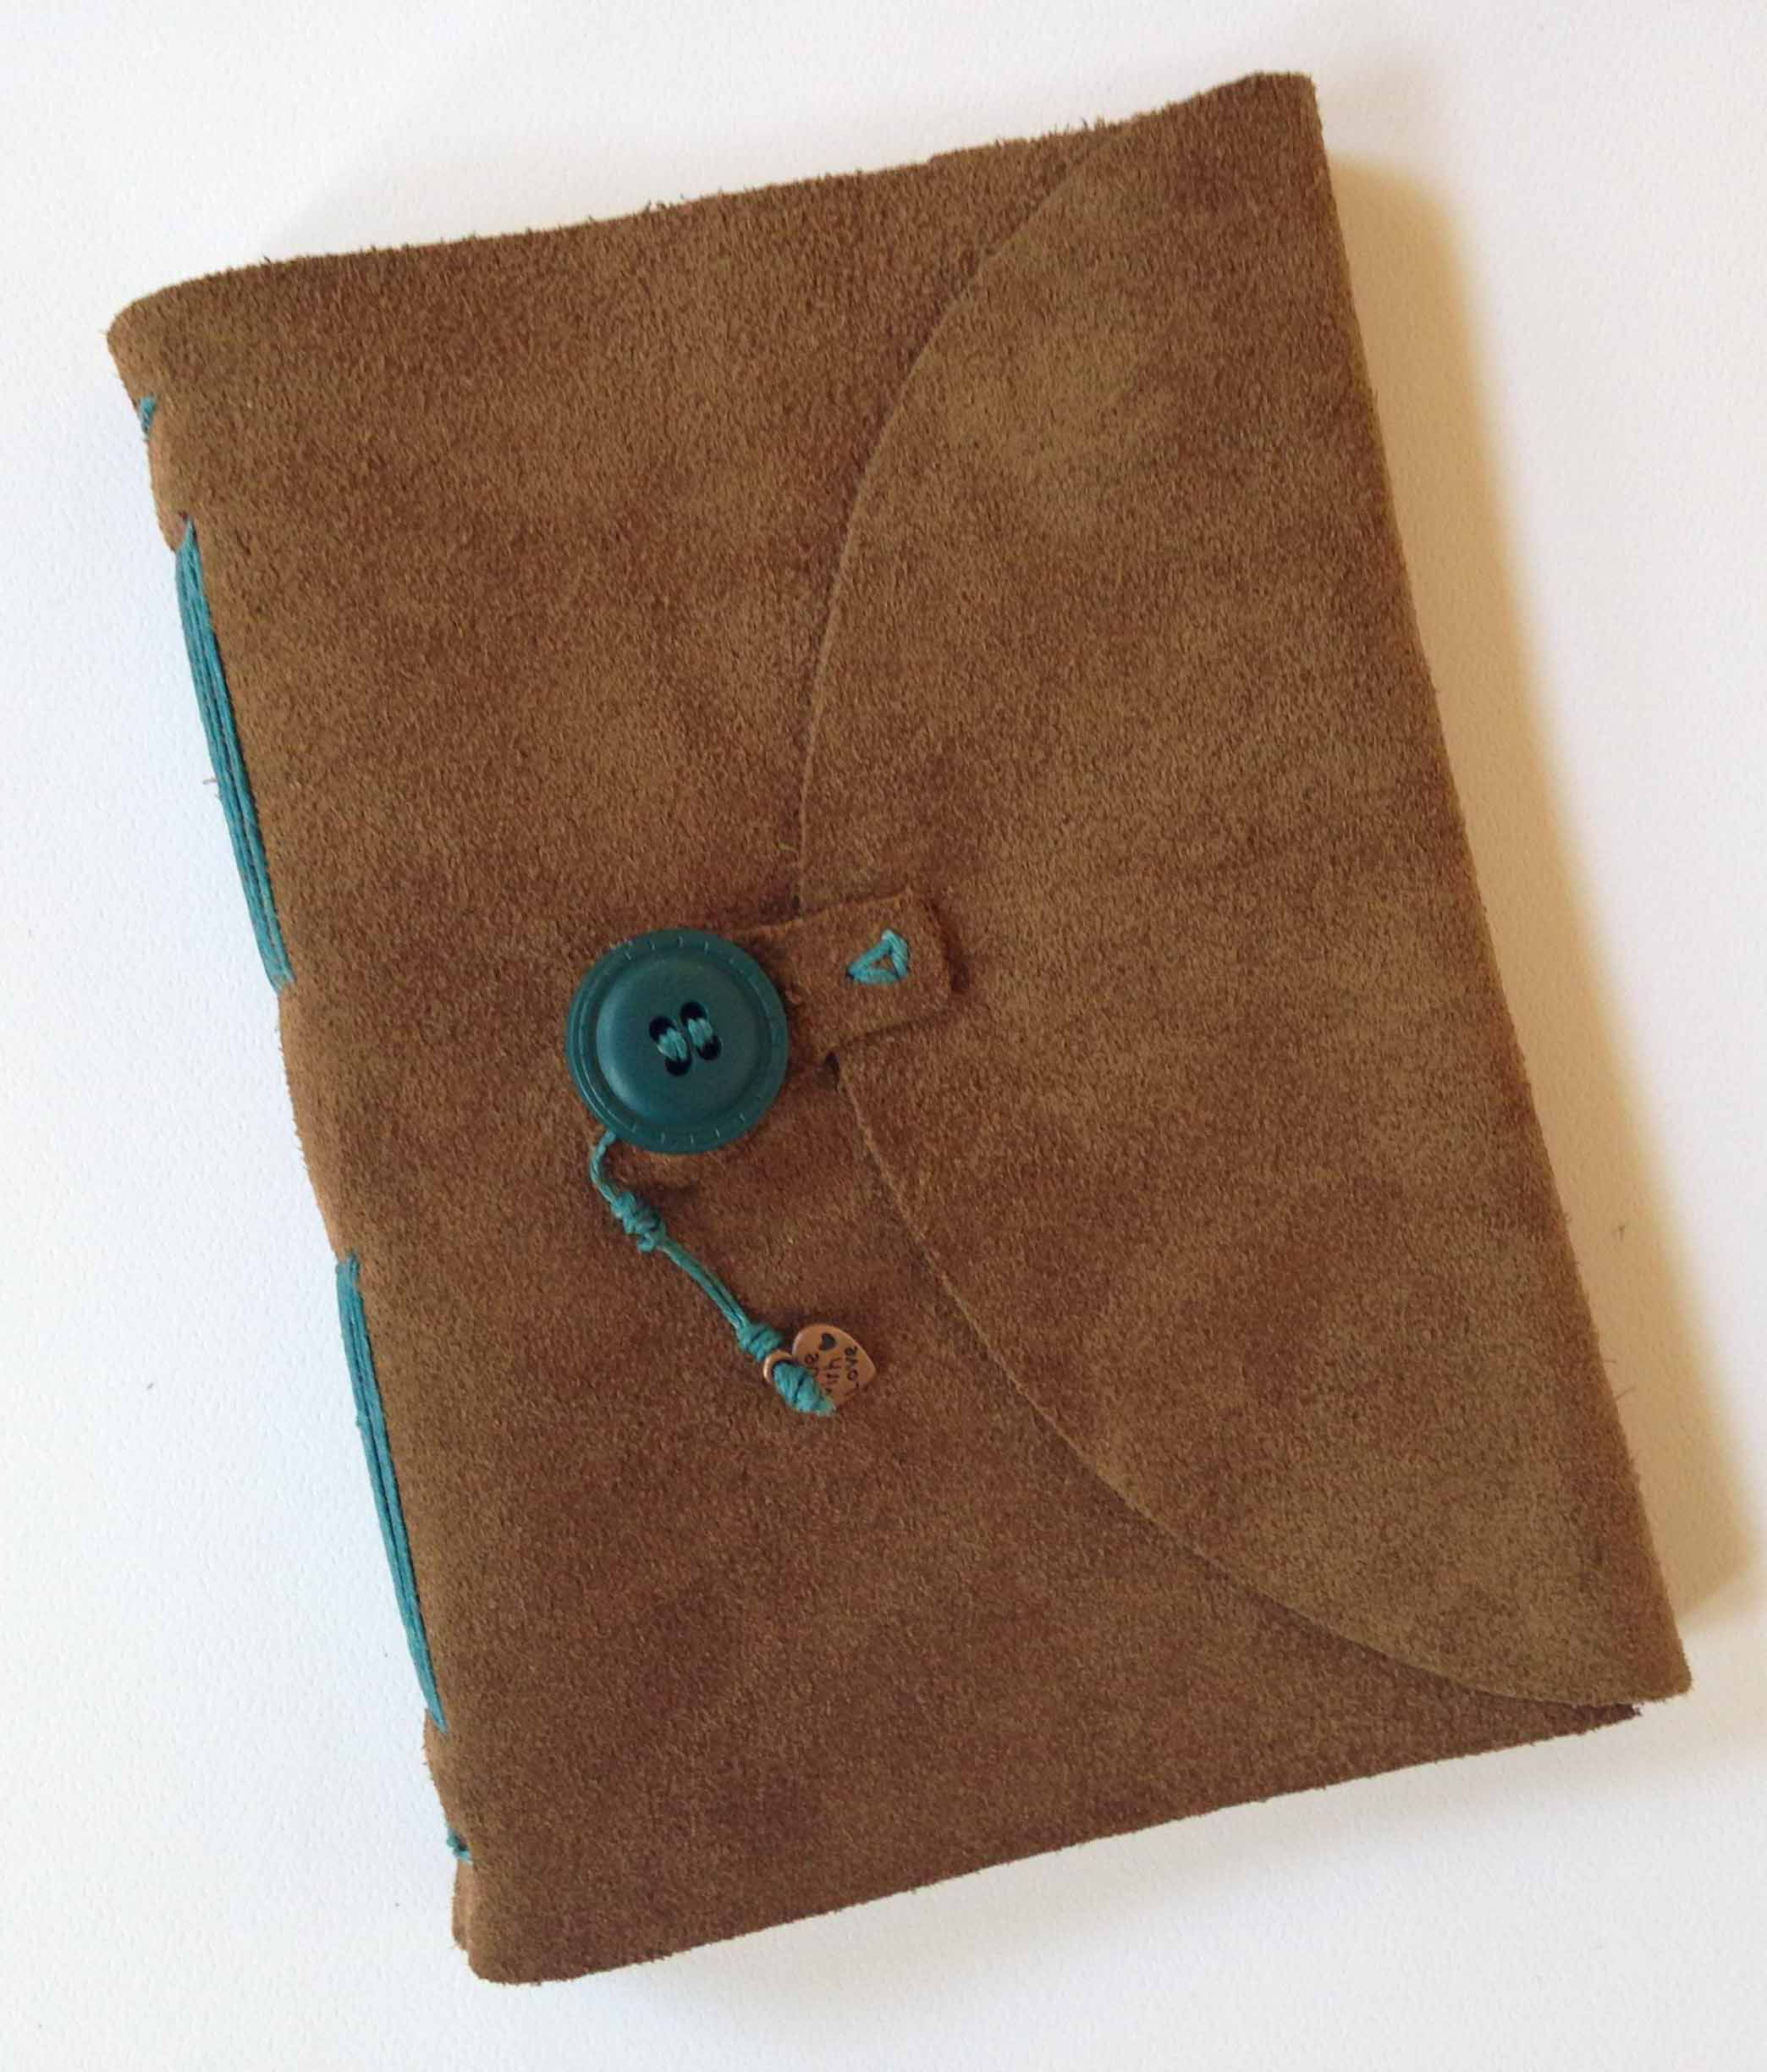 Suede Journal With Button Closure Cute Journals Handcraft My Pictures